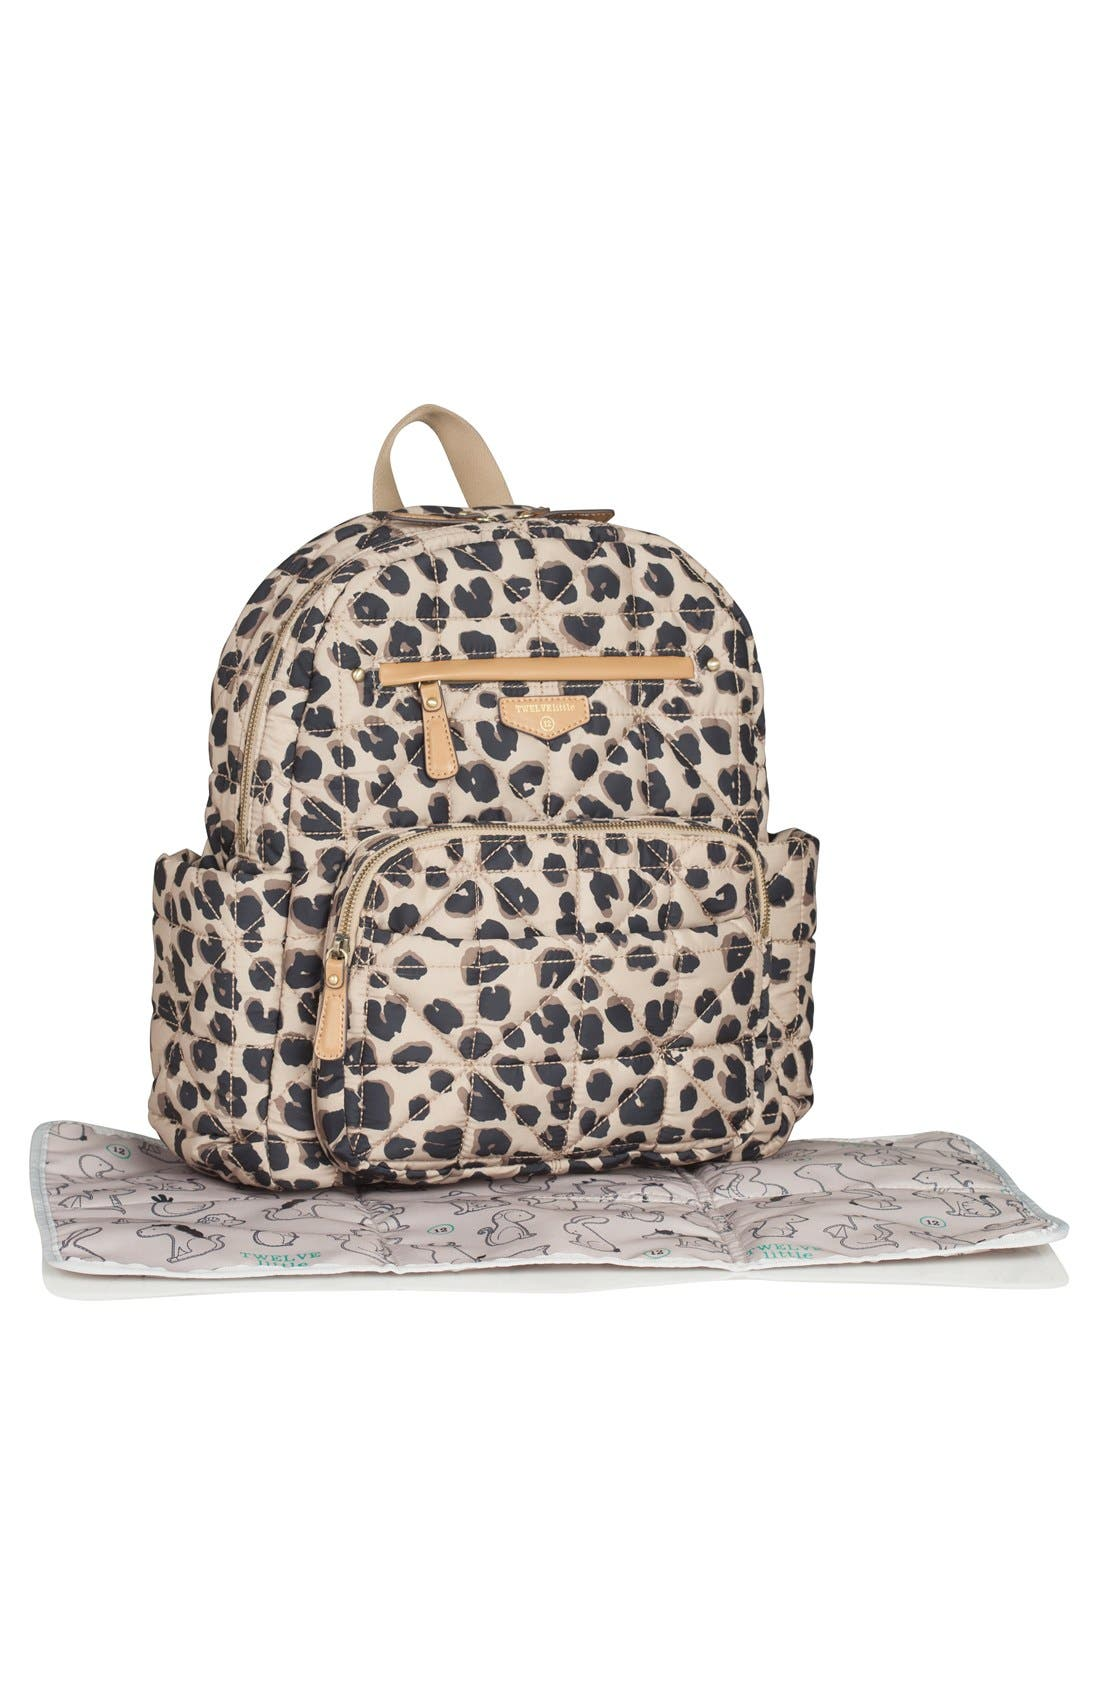 Quilted Water Resistant Nylon Diaper Backpack,                             Alternate thumbnail 6, color,                             LEOPARD PRINT